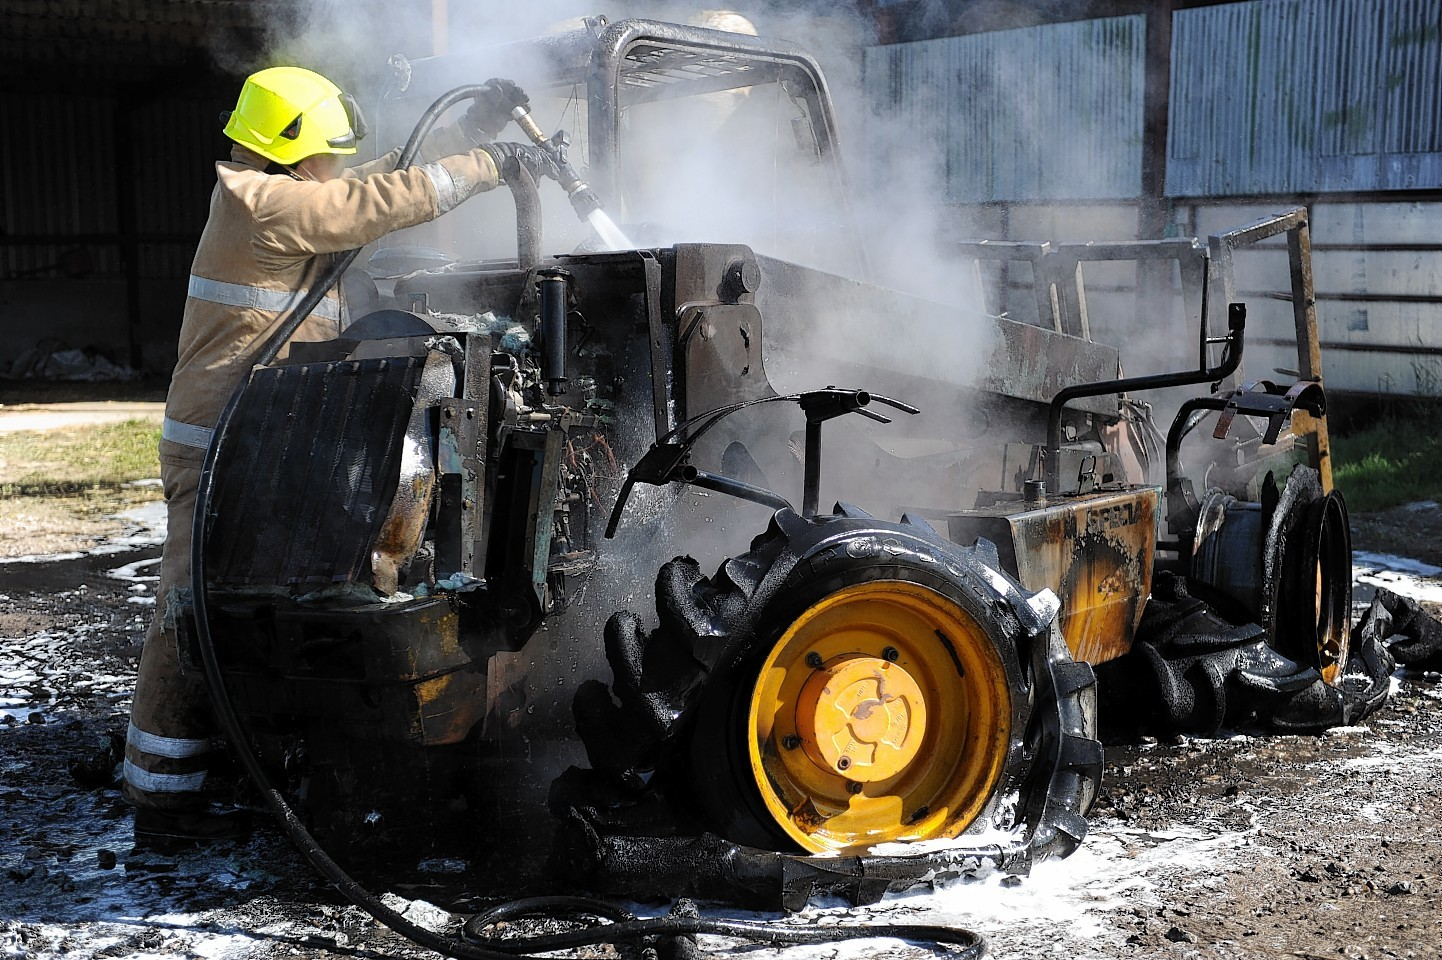 Tractor fire